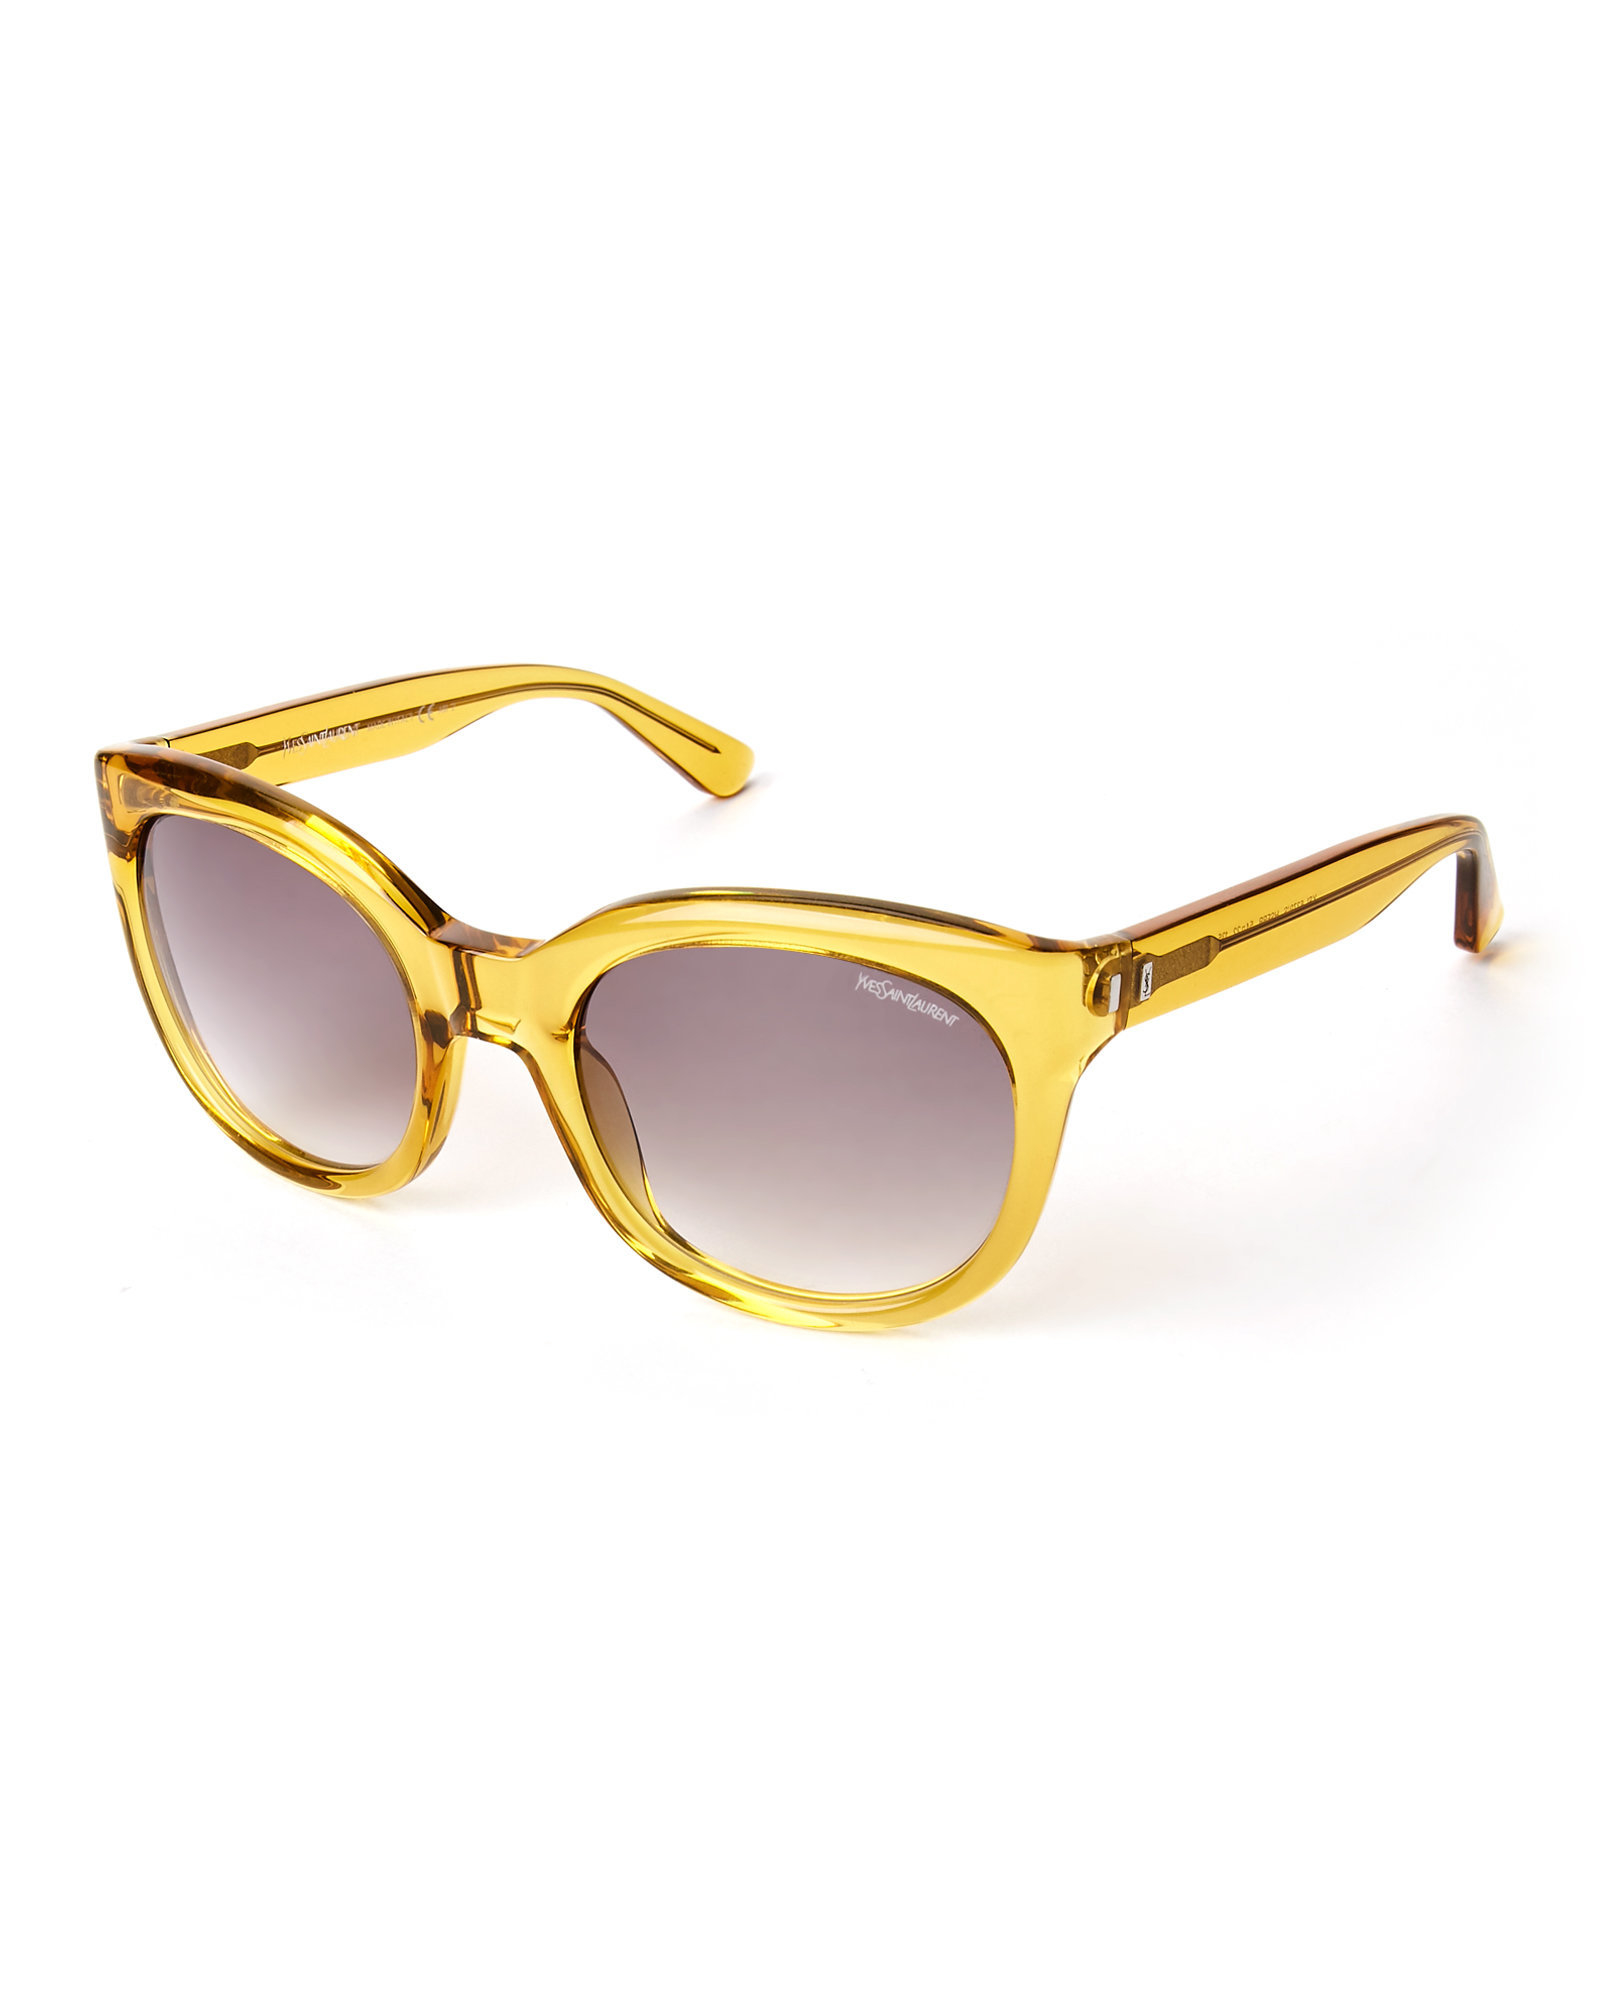 ed618cf1aa Lyst - Saint Laurent Yellow Ysl 6379 S Round Sunglasses in Metallic